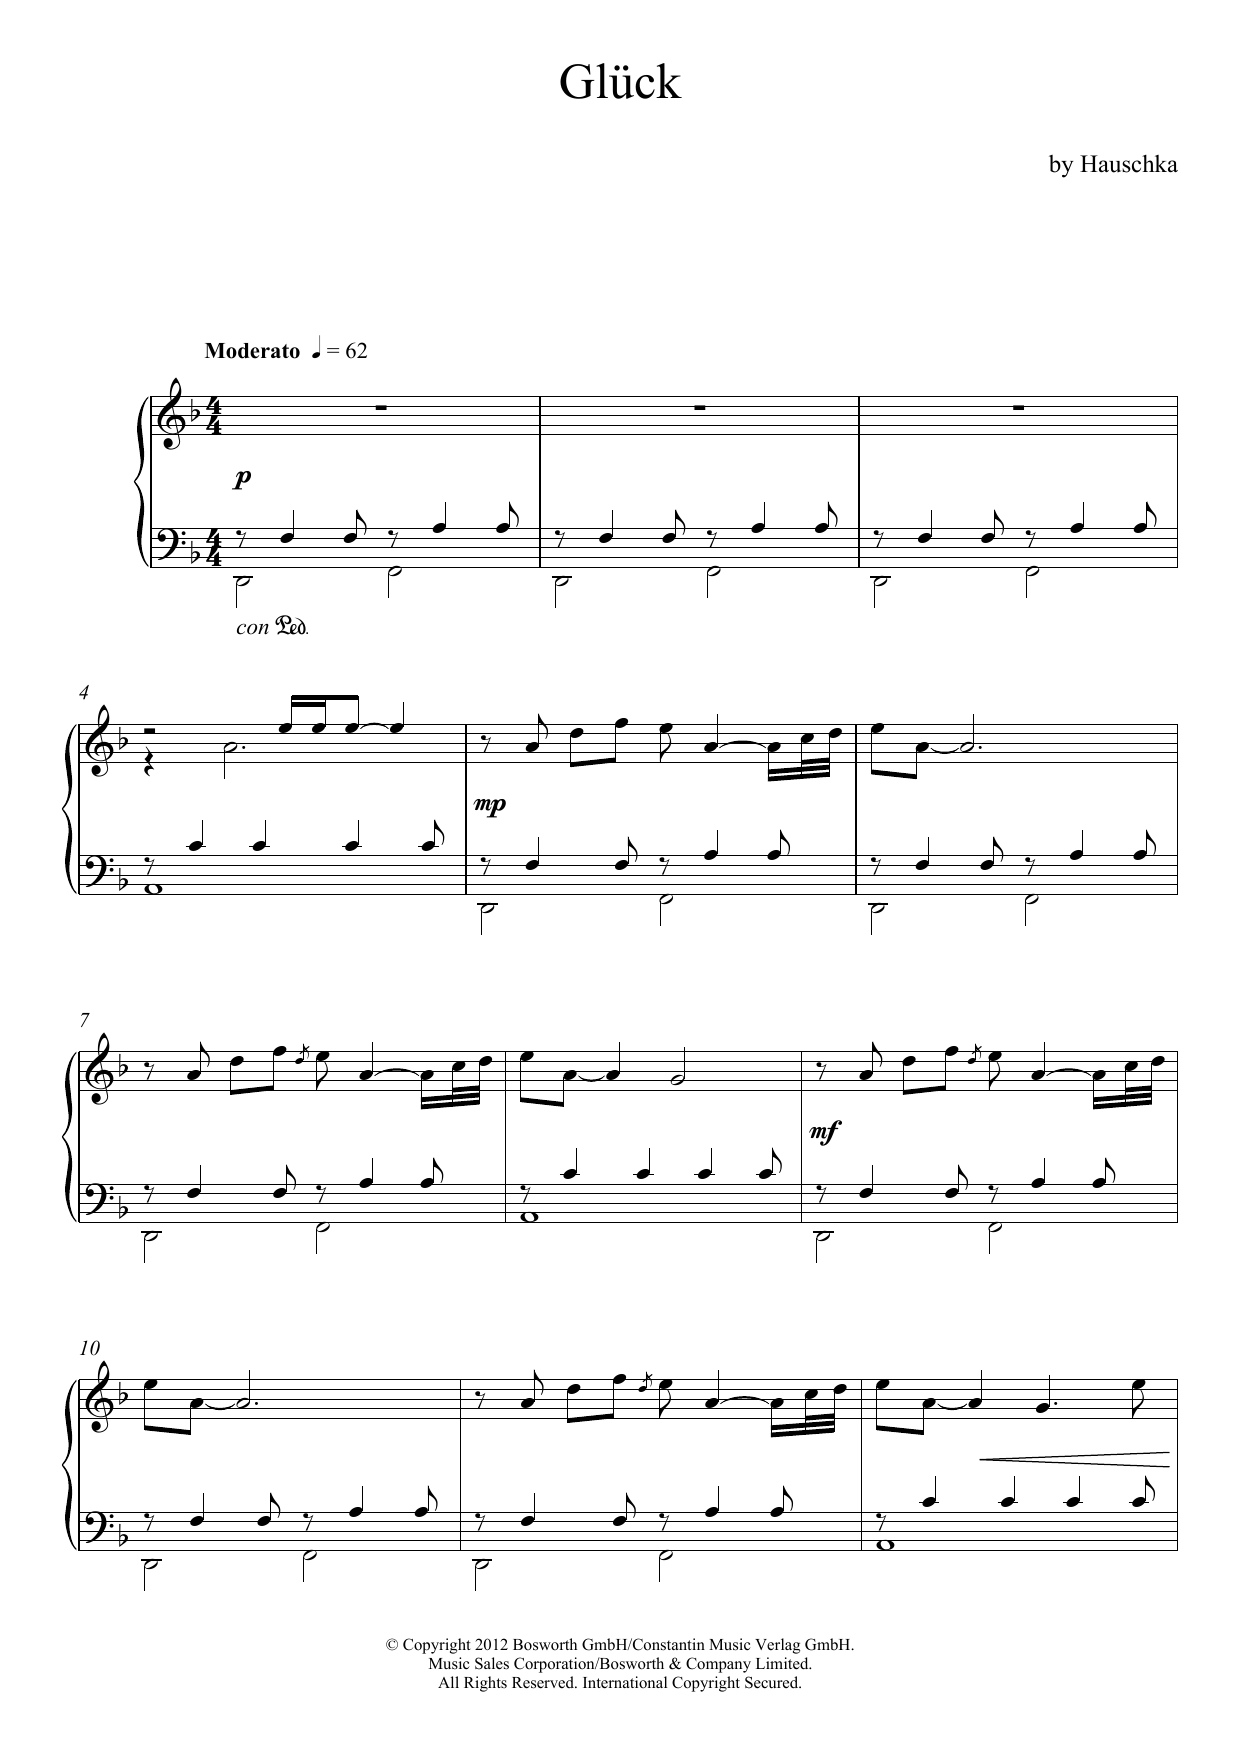 Hauschka Glück (Theme) sheet music notes and chords. Download Printable PDF.